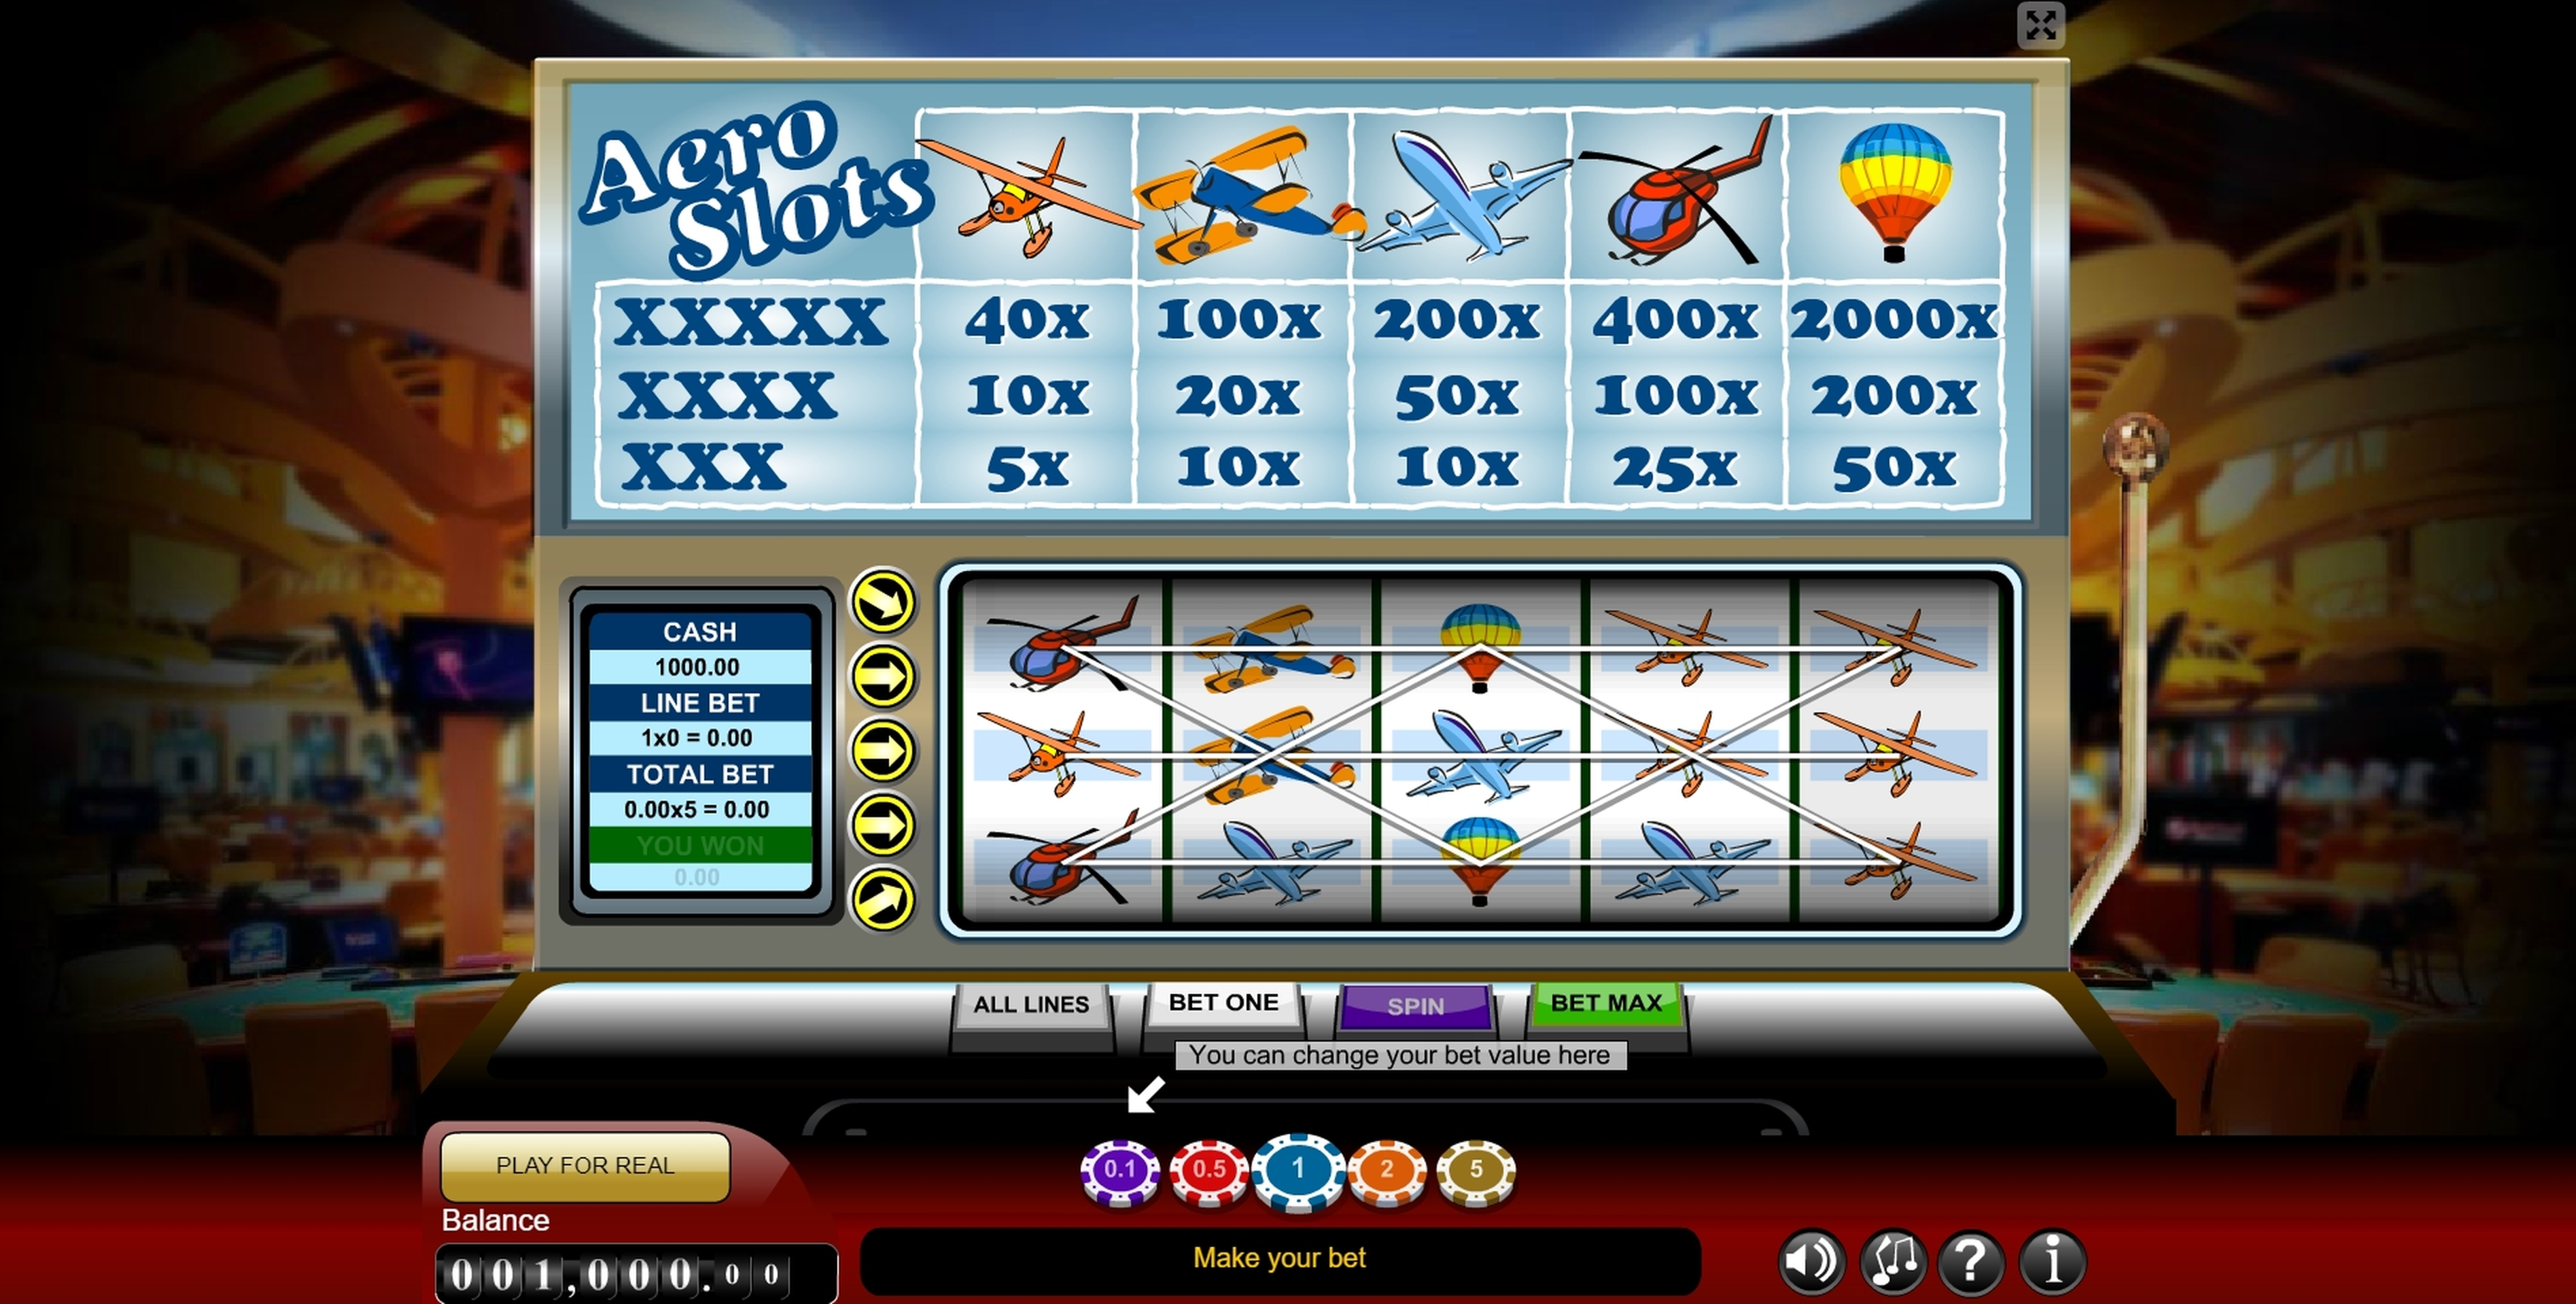 Reels in Aero Slots Slot Game by Gamescale Software